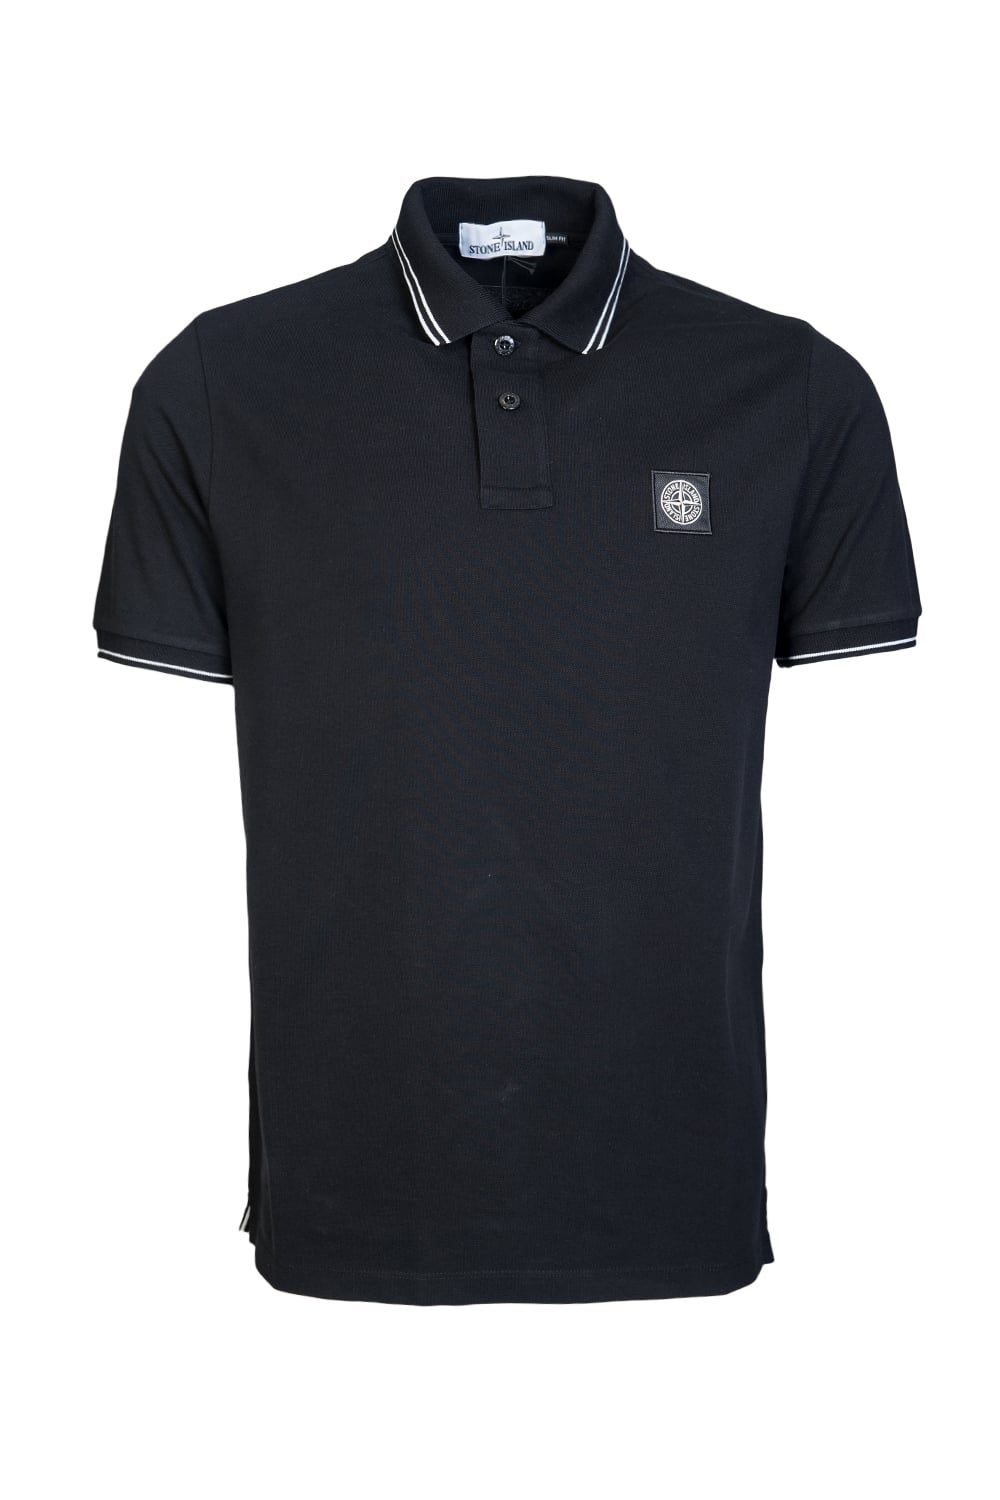 stone island polo shirts 671522s18 clothing from sage clothing uk. Black Bedroom Furniture Sets. Home Design Ideas